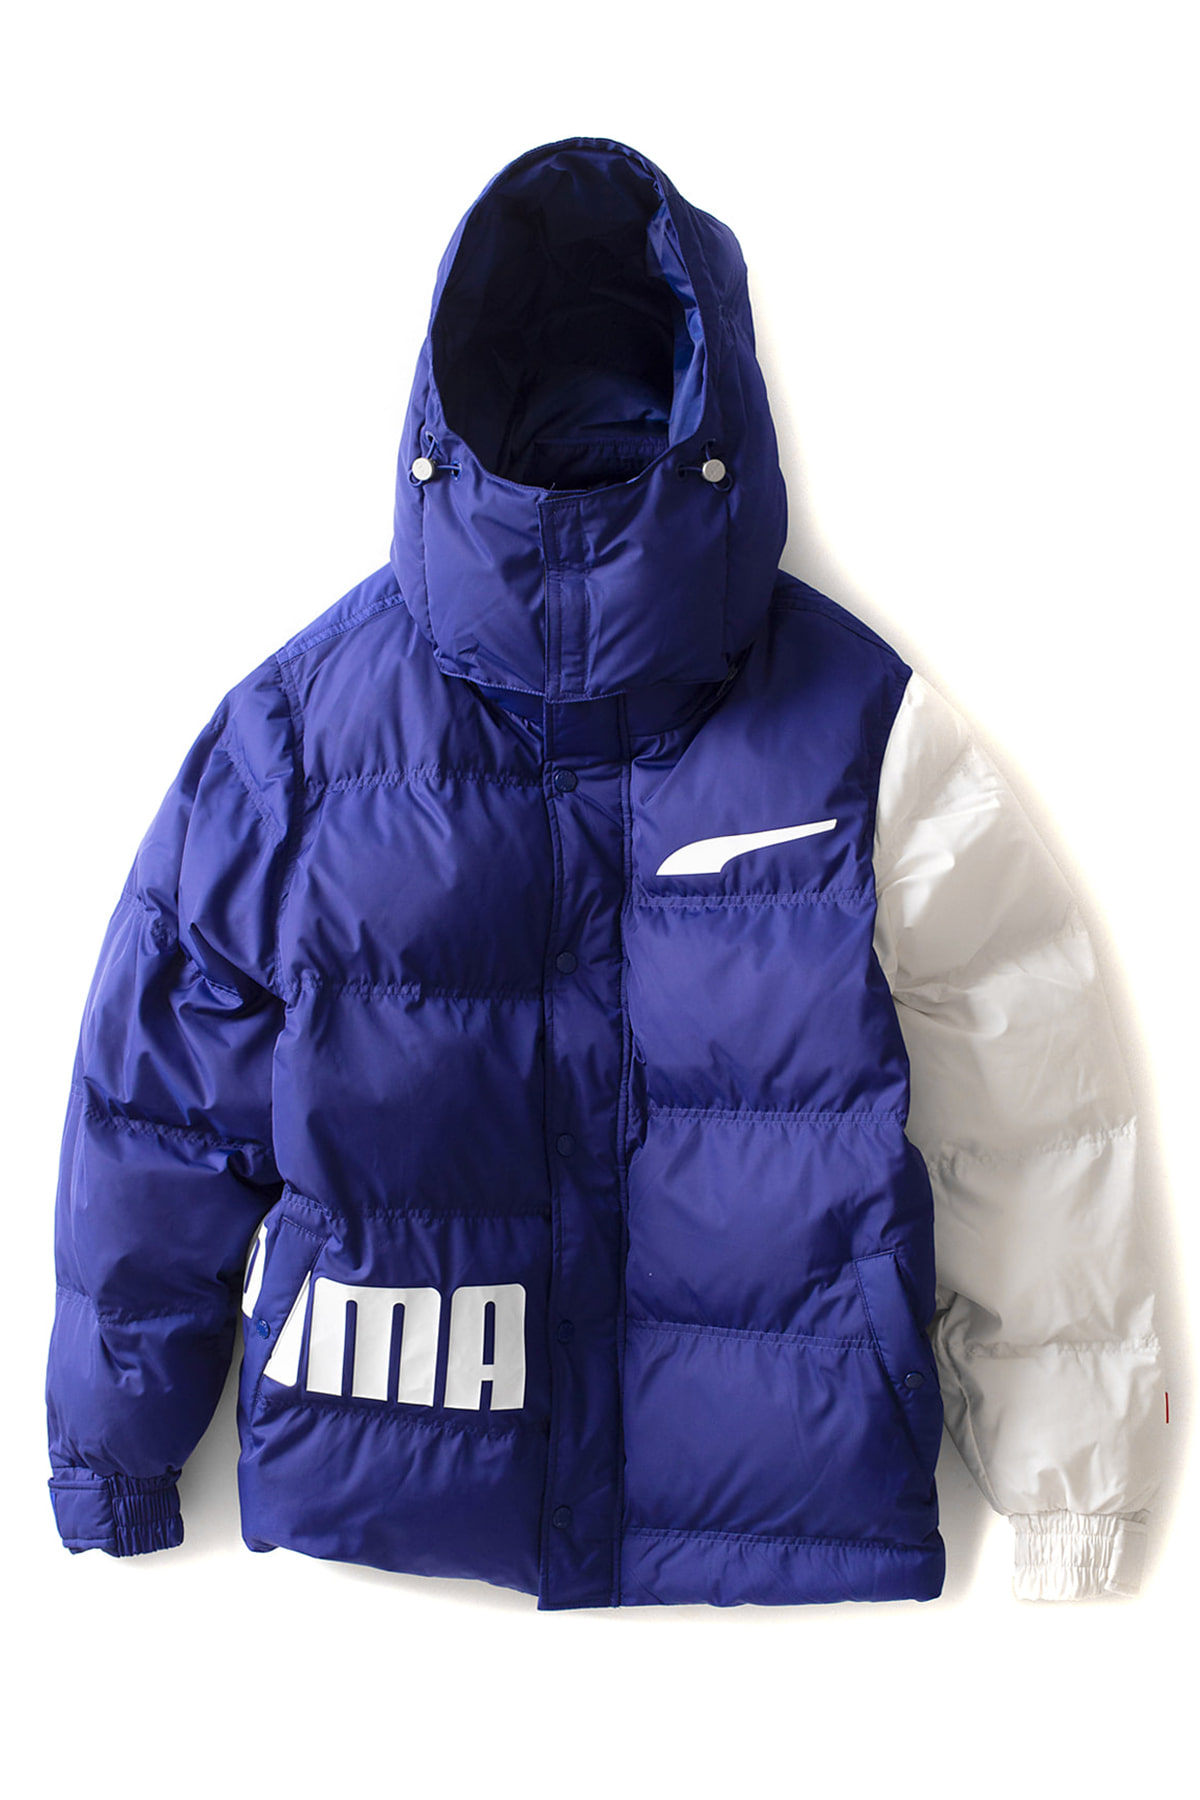 PUMA x Ader Error : PUMA x ADER Jacket (Blueprint)